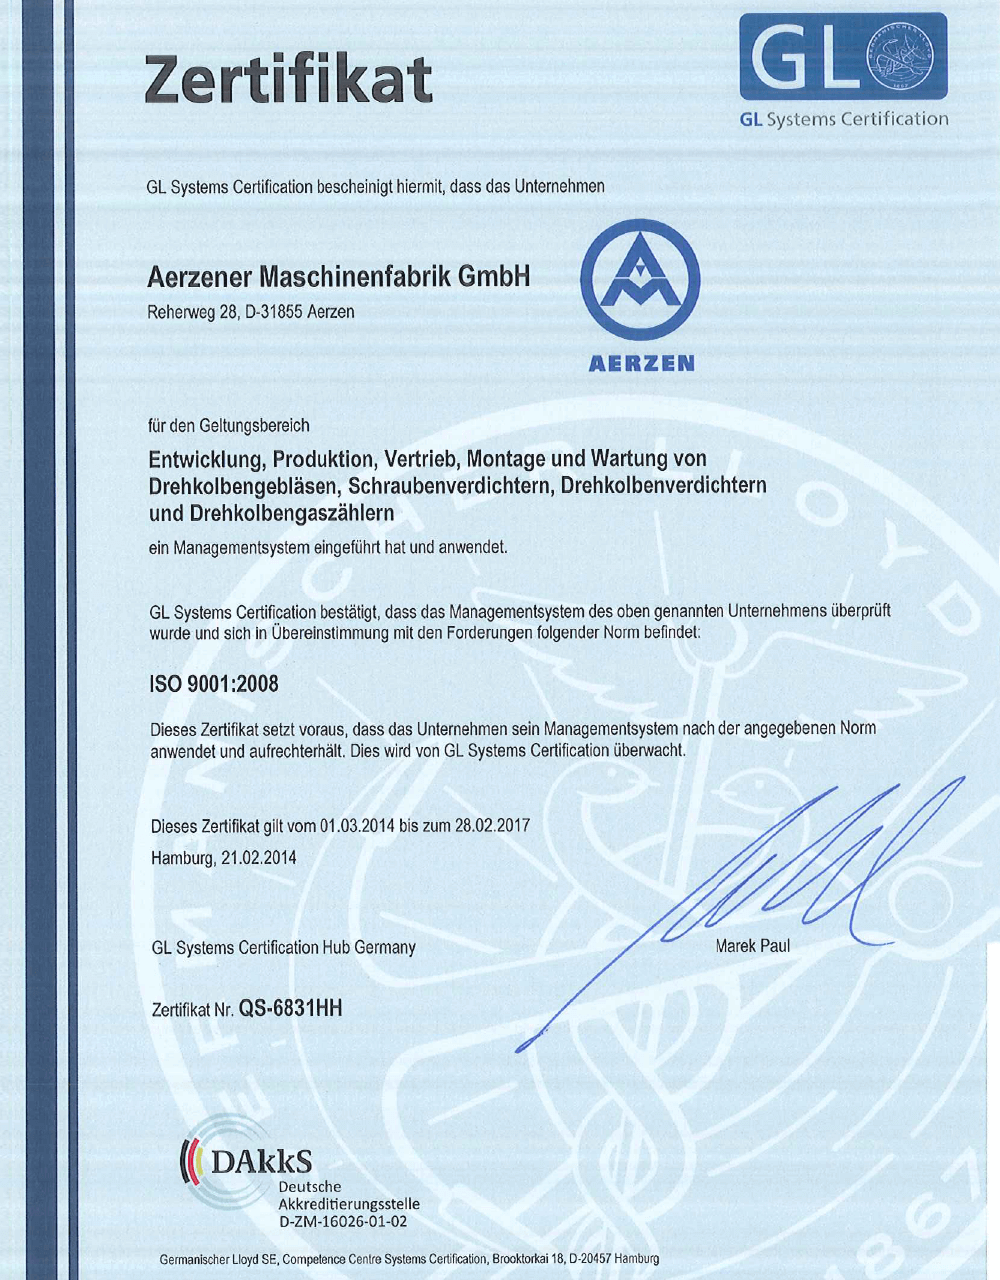 The quality orientation certificated acc. to DIN ISO 9001